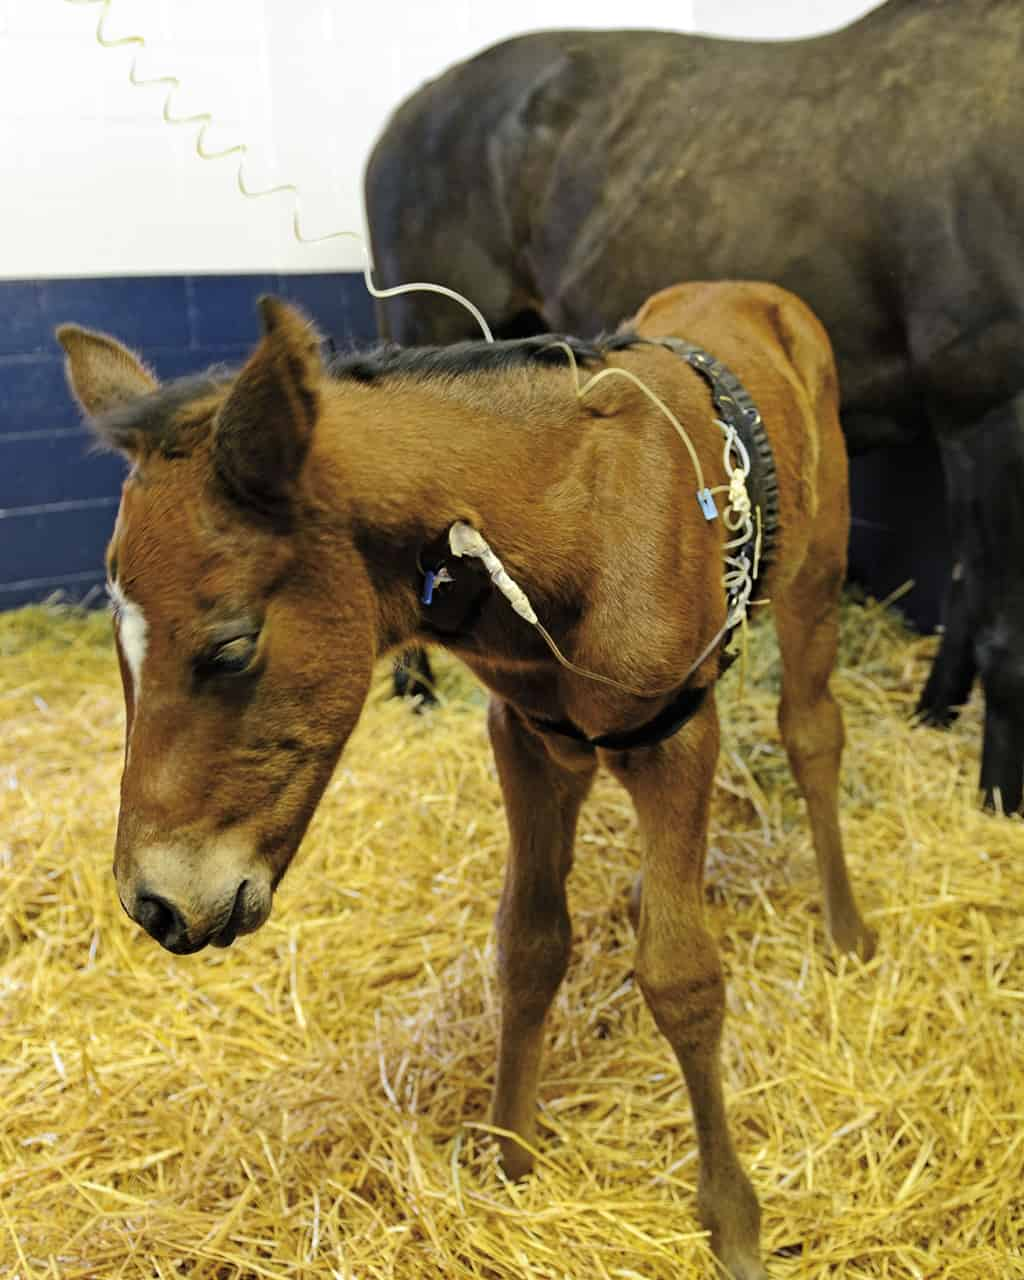 Foal And Adult Horse Blood Samples: What's The Difference